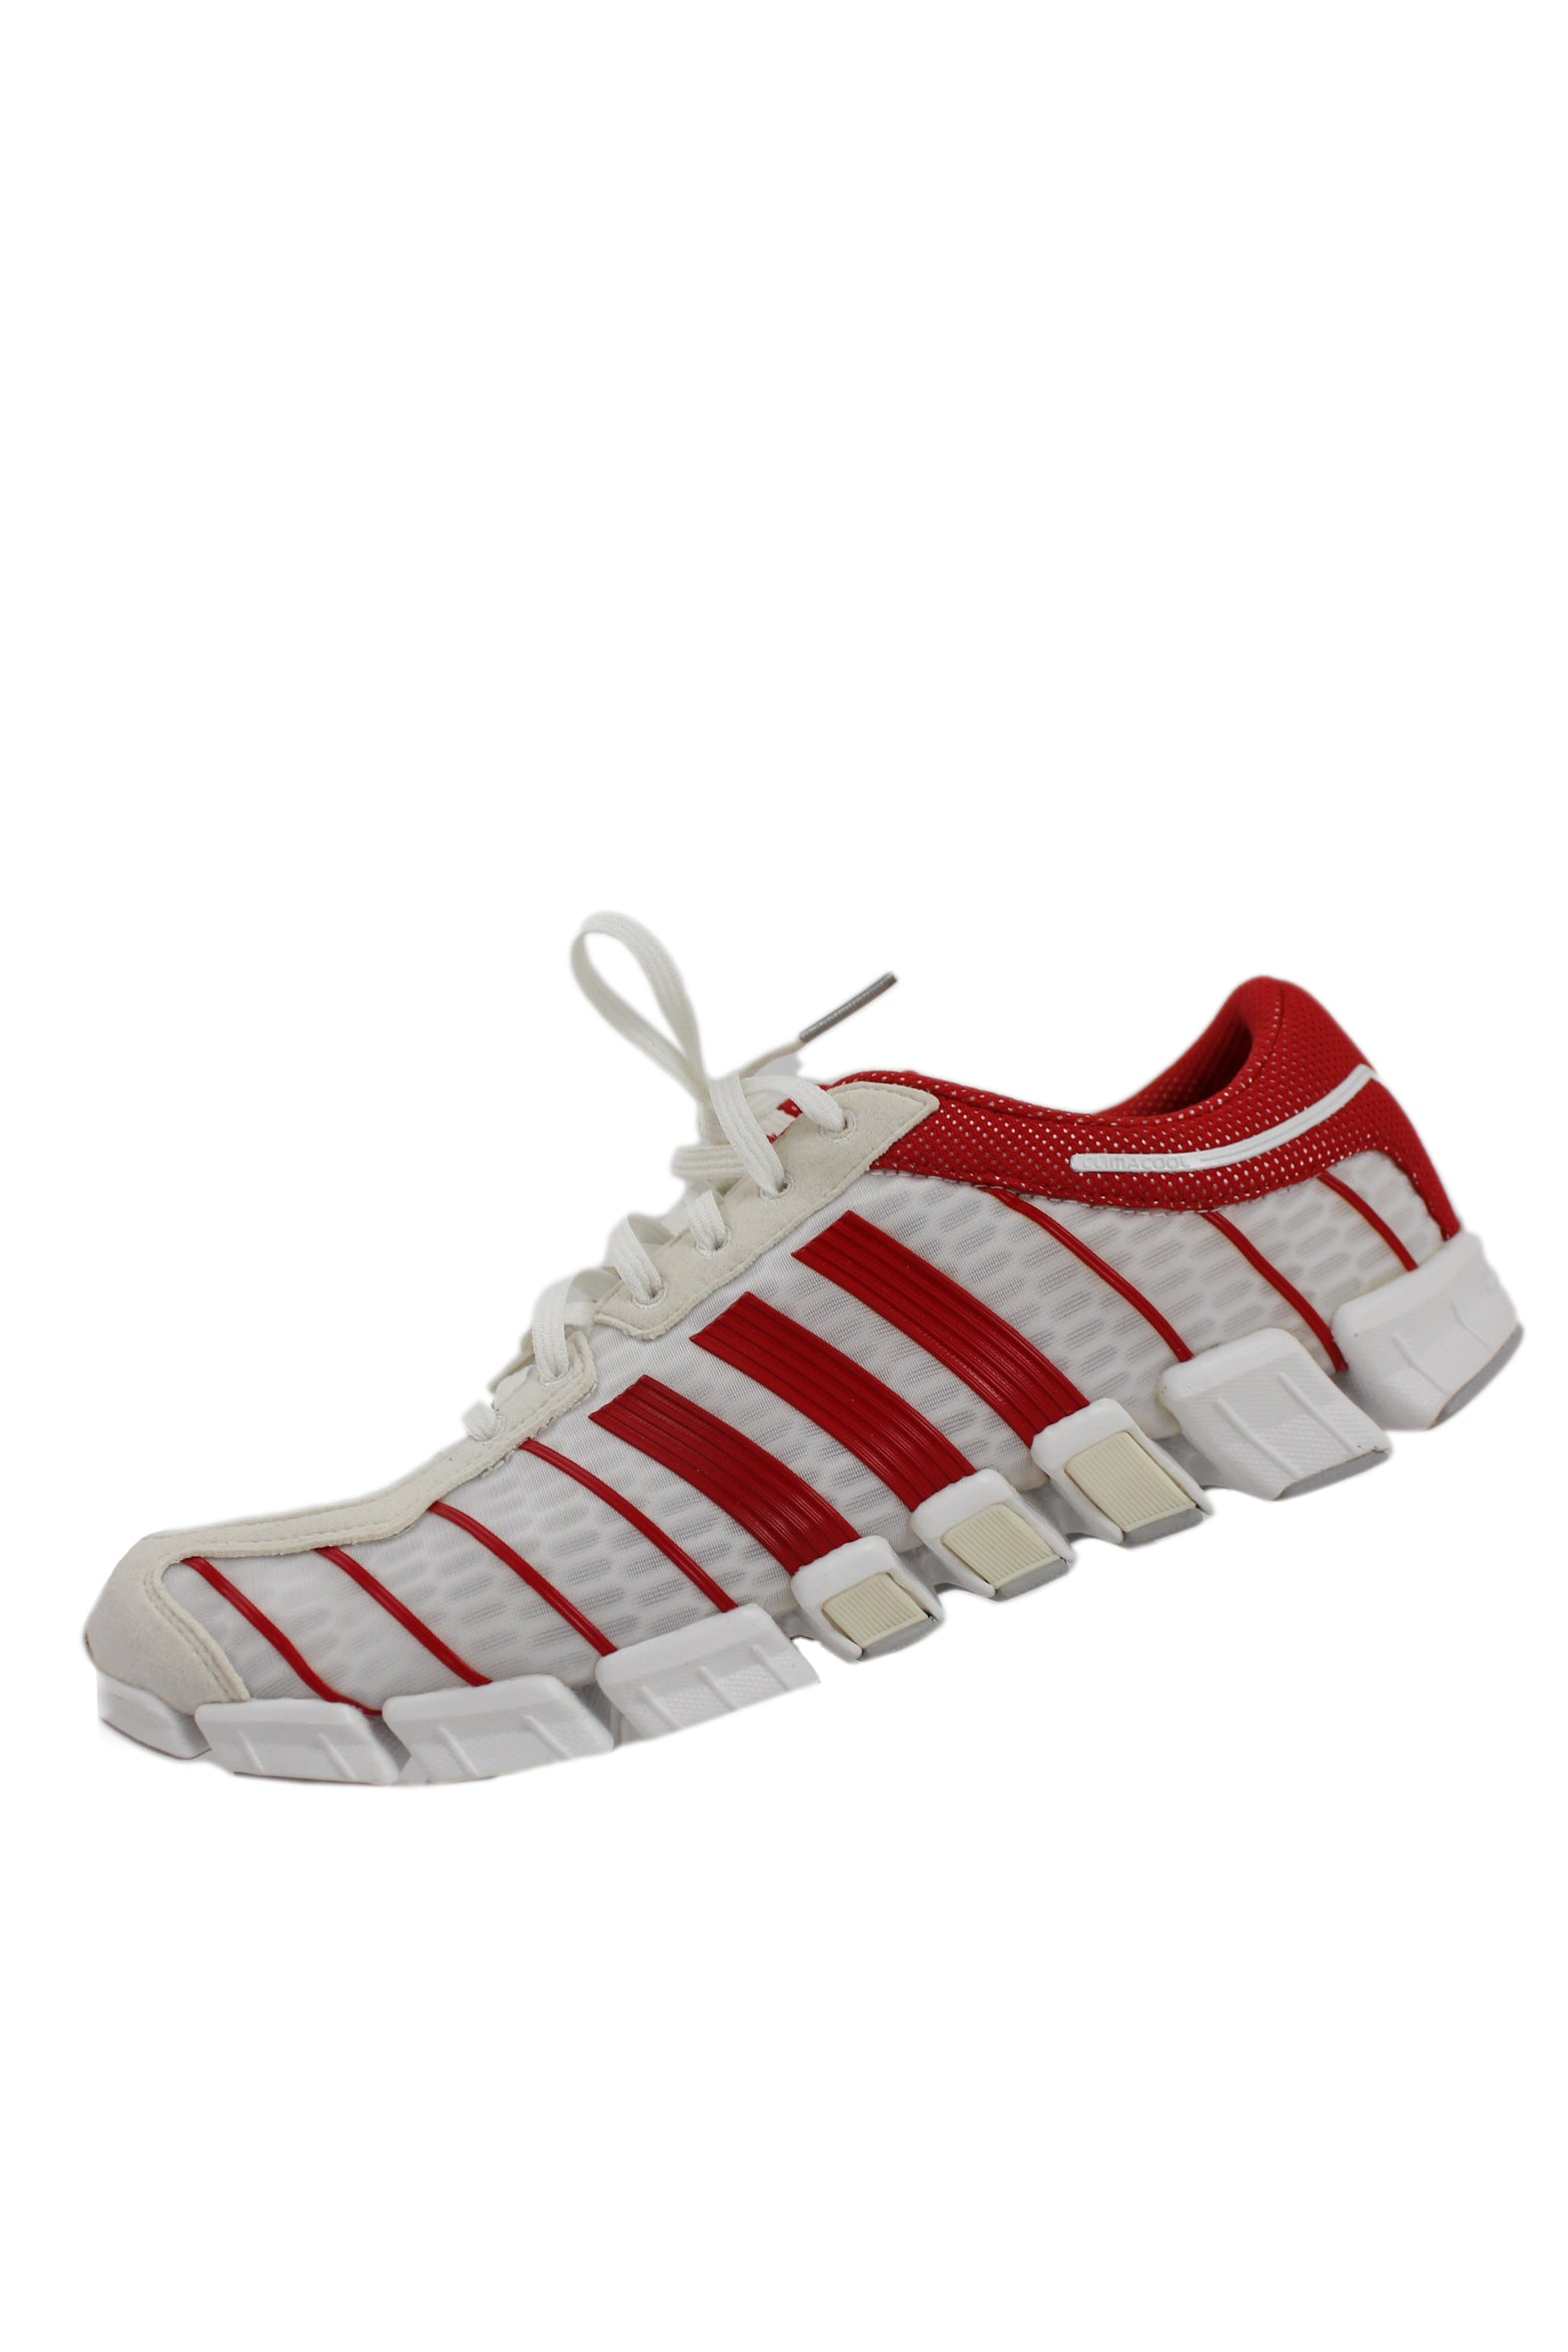 mi adidas climacool red and white sneakers. features upper with white overlay on white perforated mesh, red perforated mesh and red stripes along sides. has white rubber soles and shoe laces with japanese flag shoe charm.